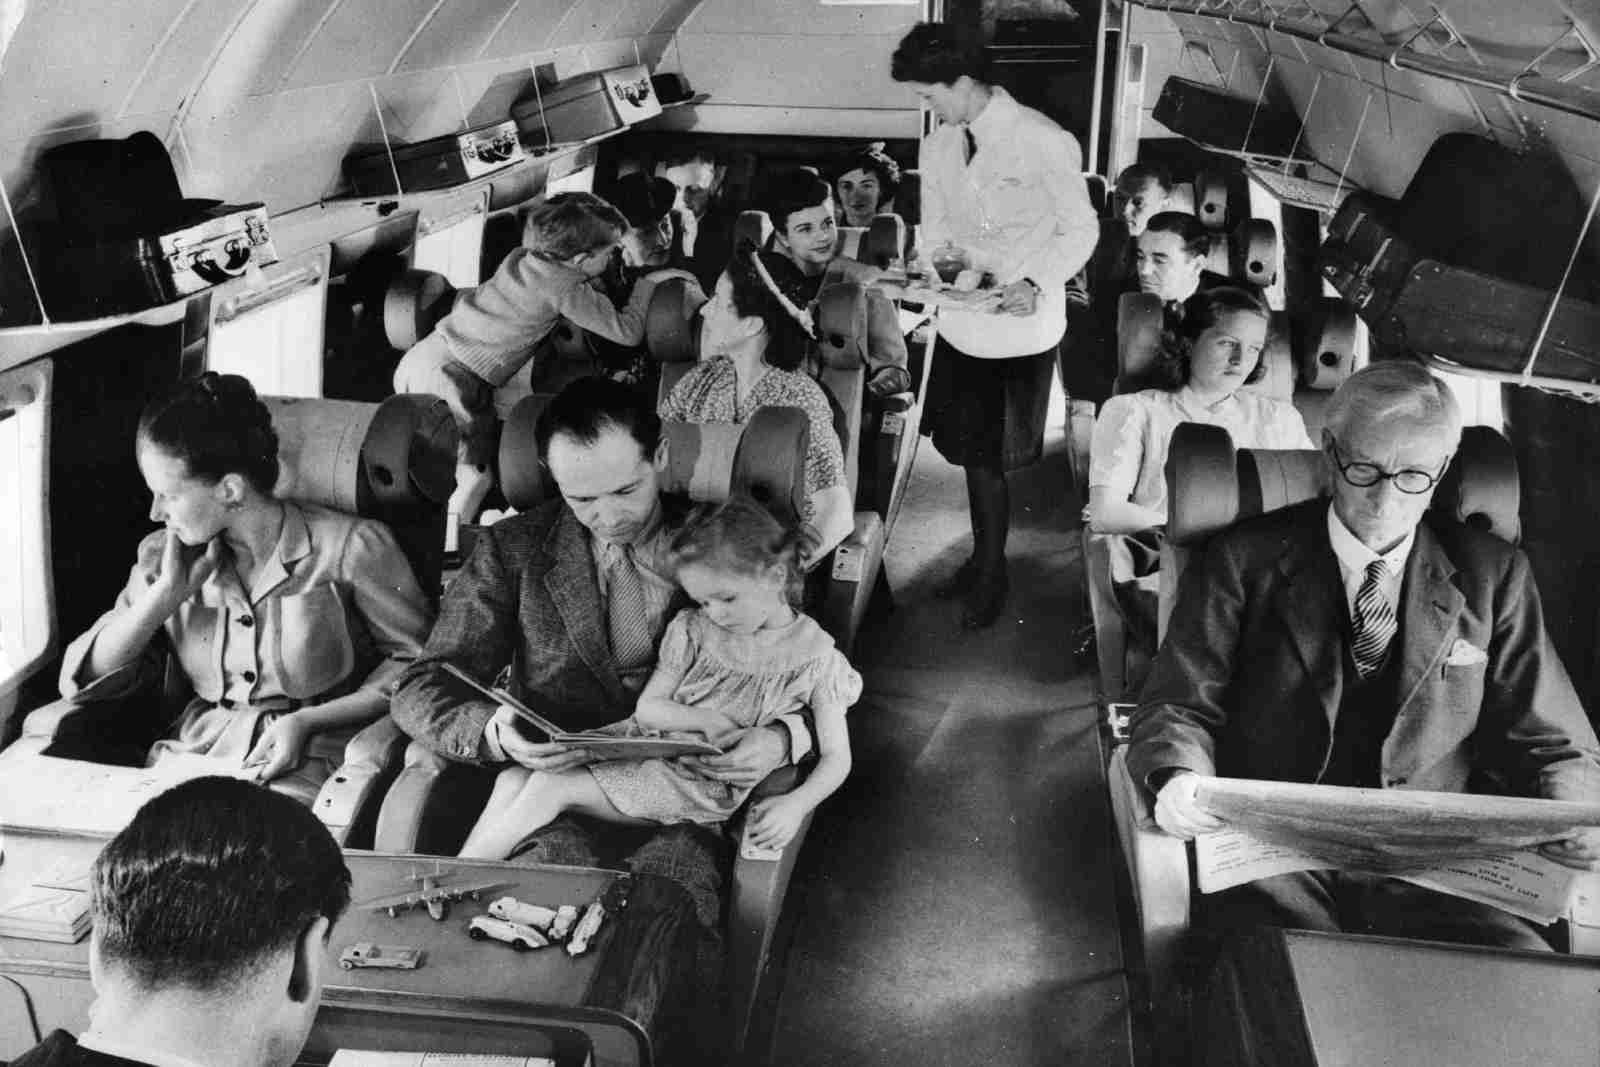 The passenger section of a BEA Vickers in 1960. (Photo by Fox Photos/Getty Images)